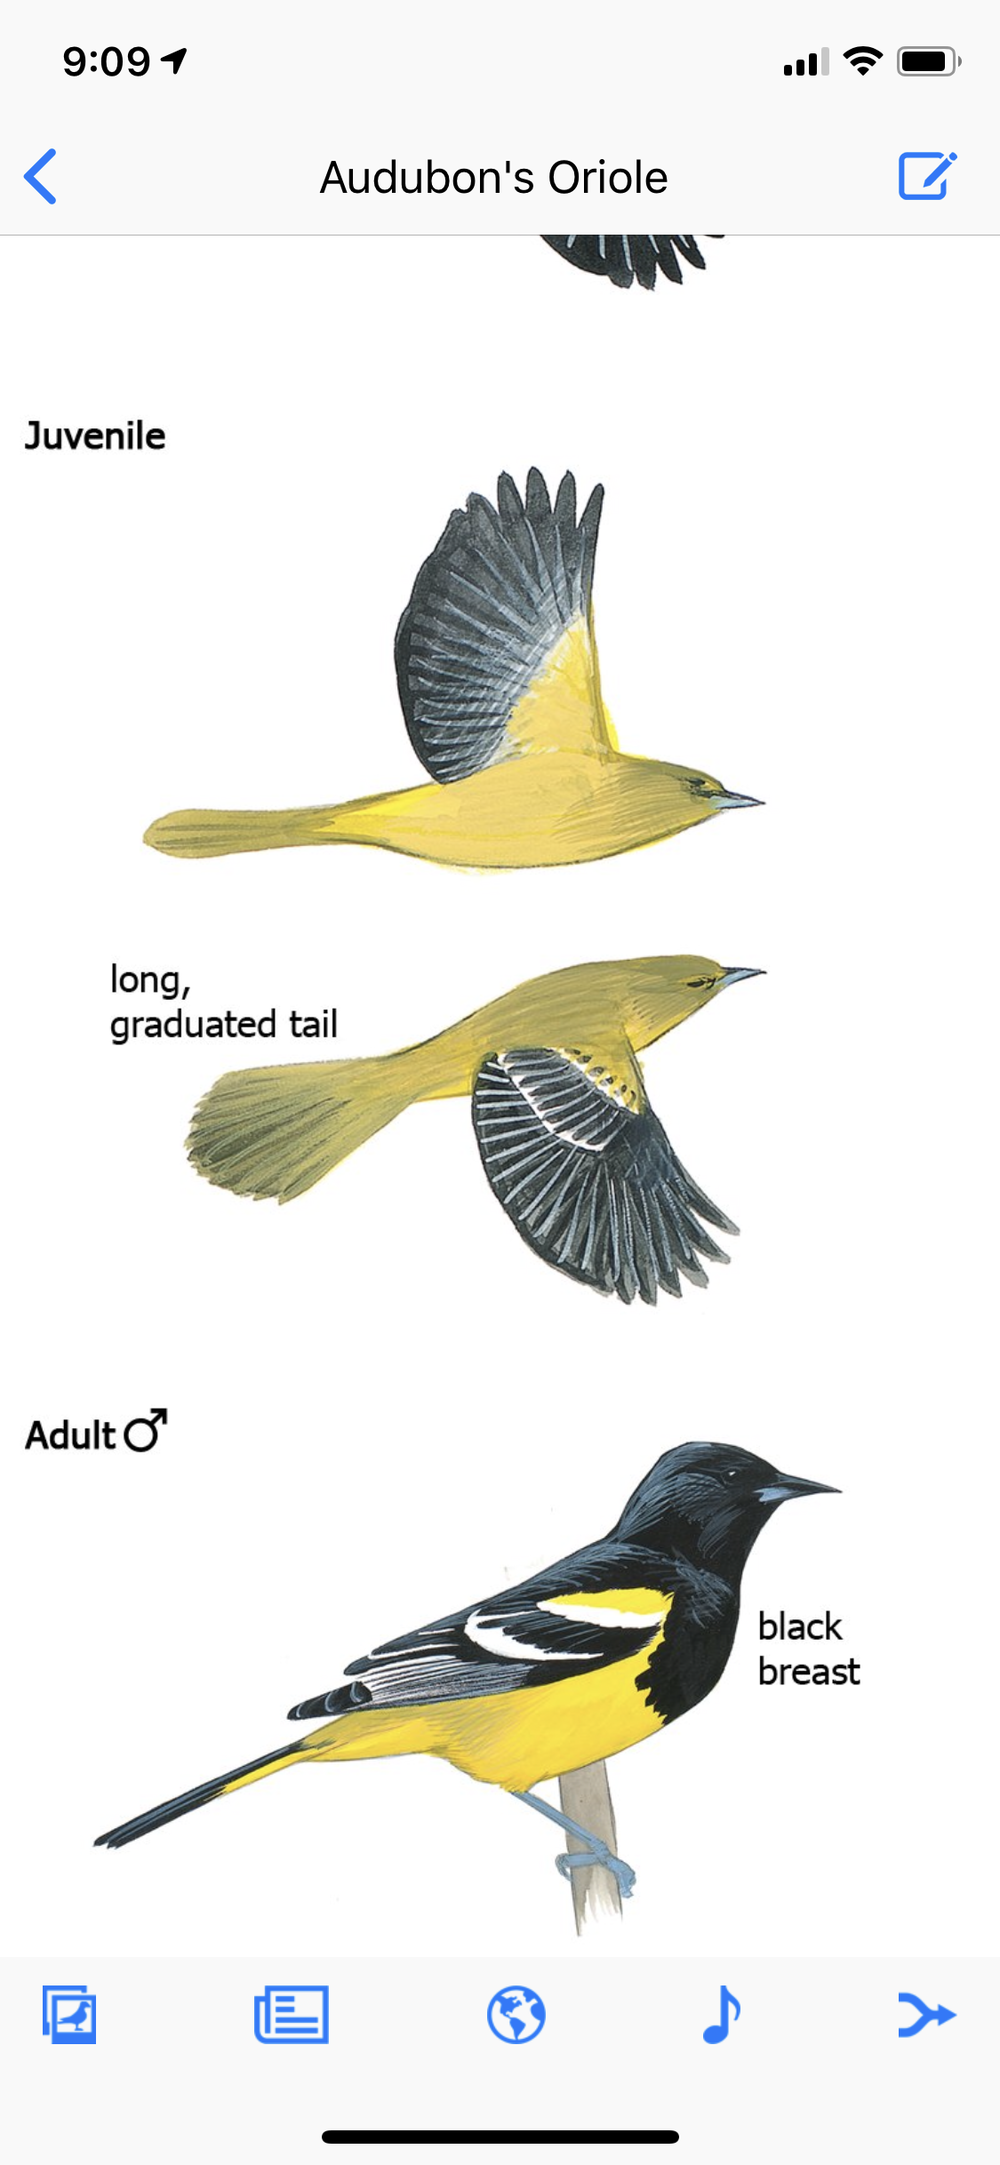 Oh hey…that's a Scott's oriole on the Audubon oriole page…I'm guessing an intern who is not a birder got confused.